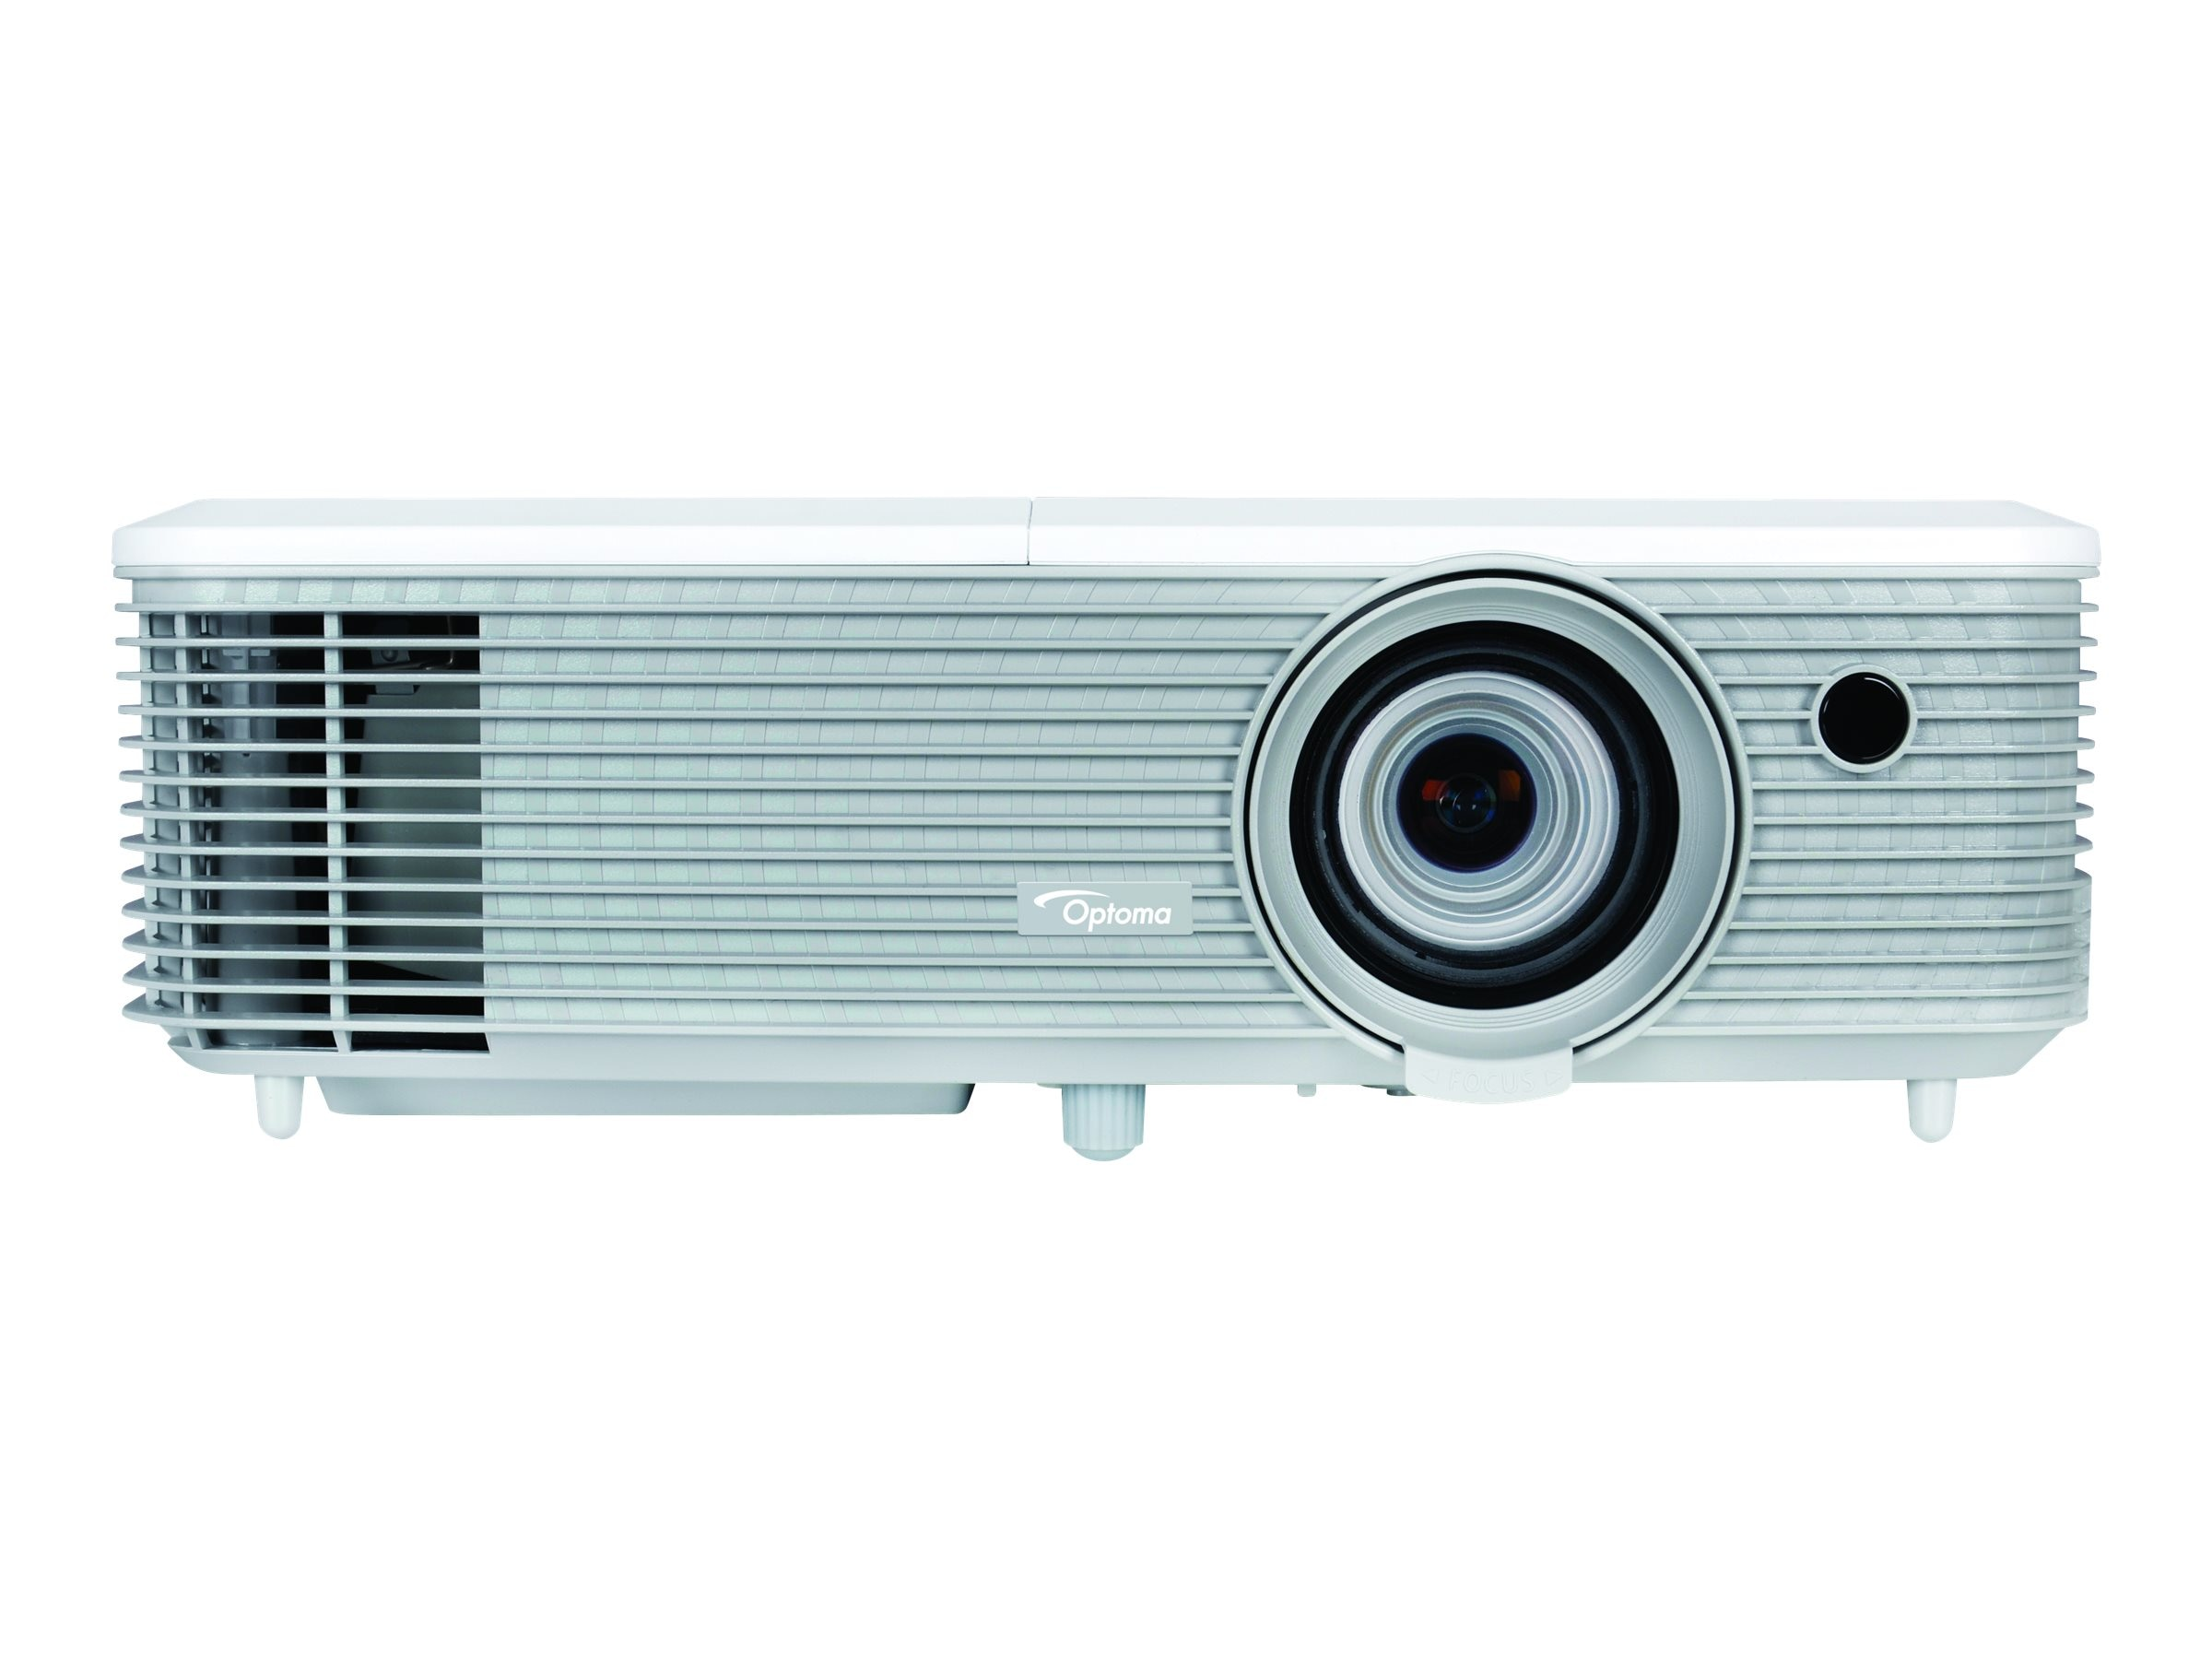 Optoma Technology W355 Image 2